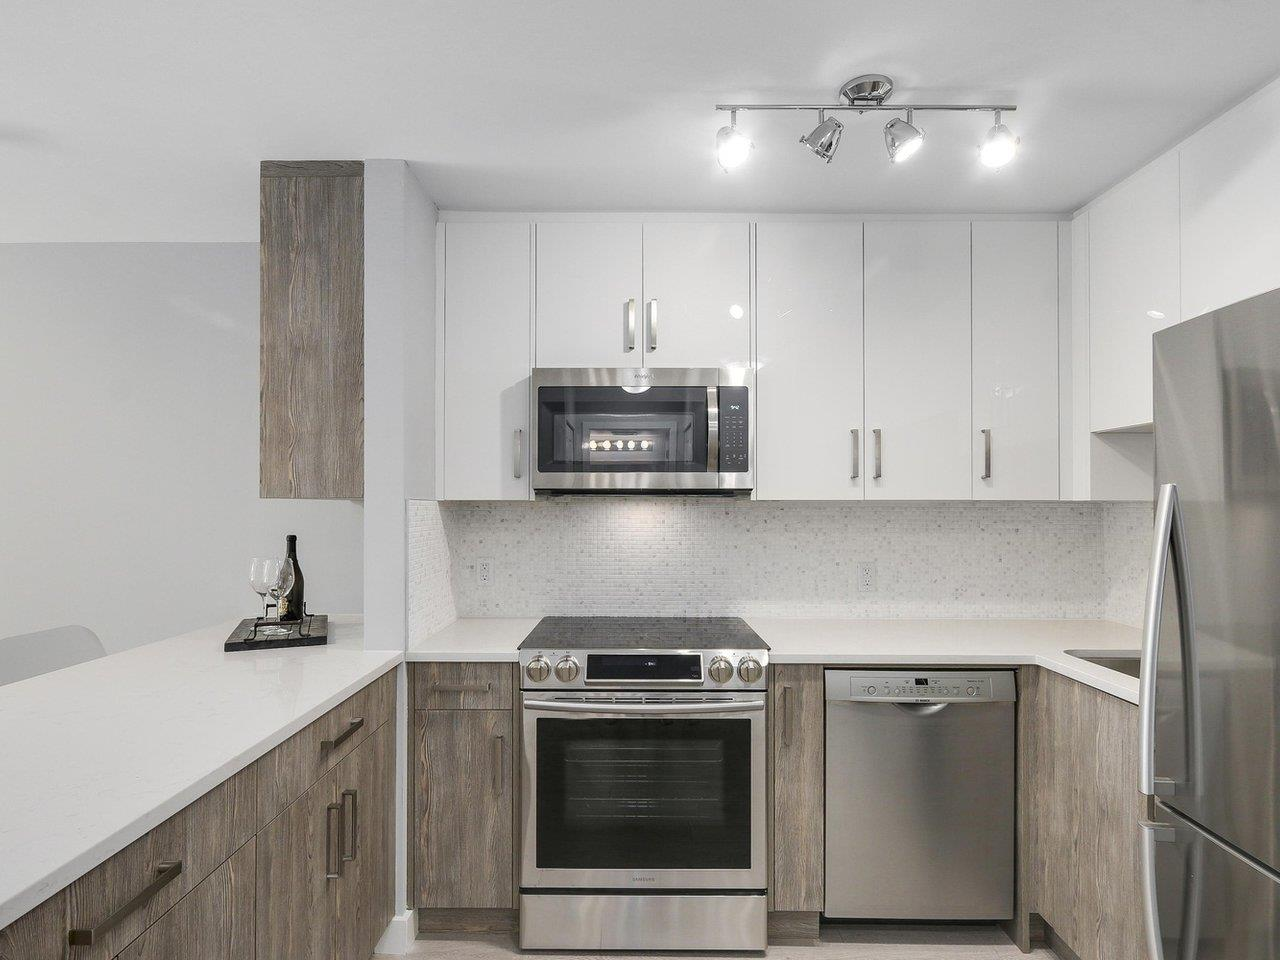 "Photo 4: 102 3624 FRASER Street in Vancouver: Fraser VE Condo for sale in ""THE TRAFALGAR"" (Vancouver East)  : MLS® # R2173895"